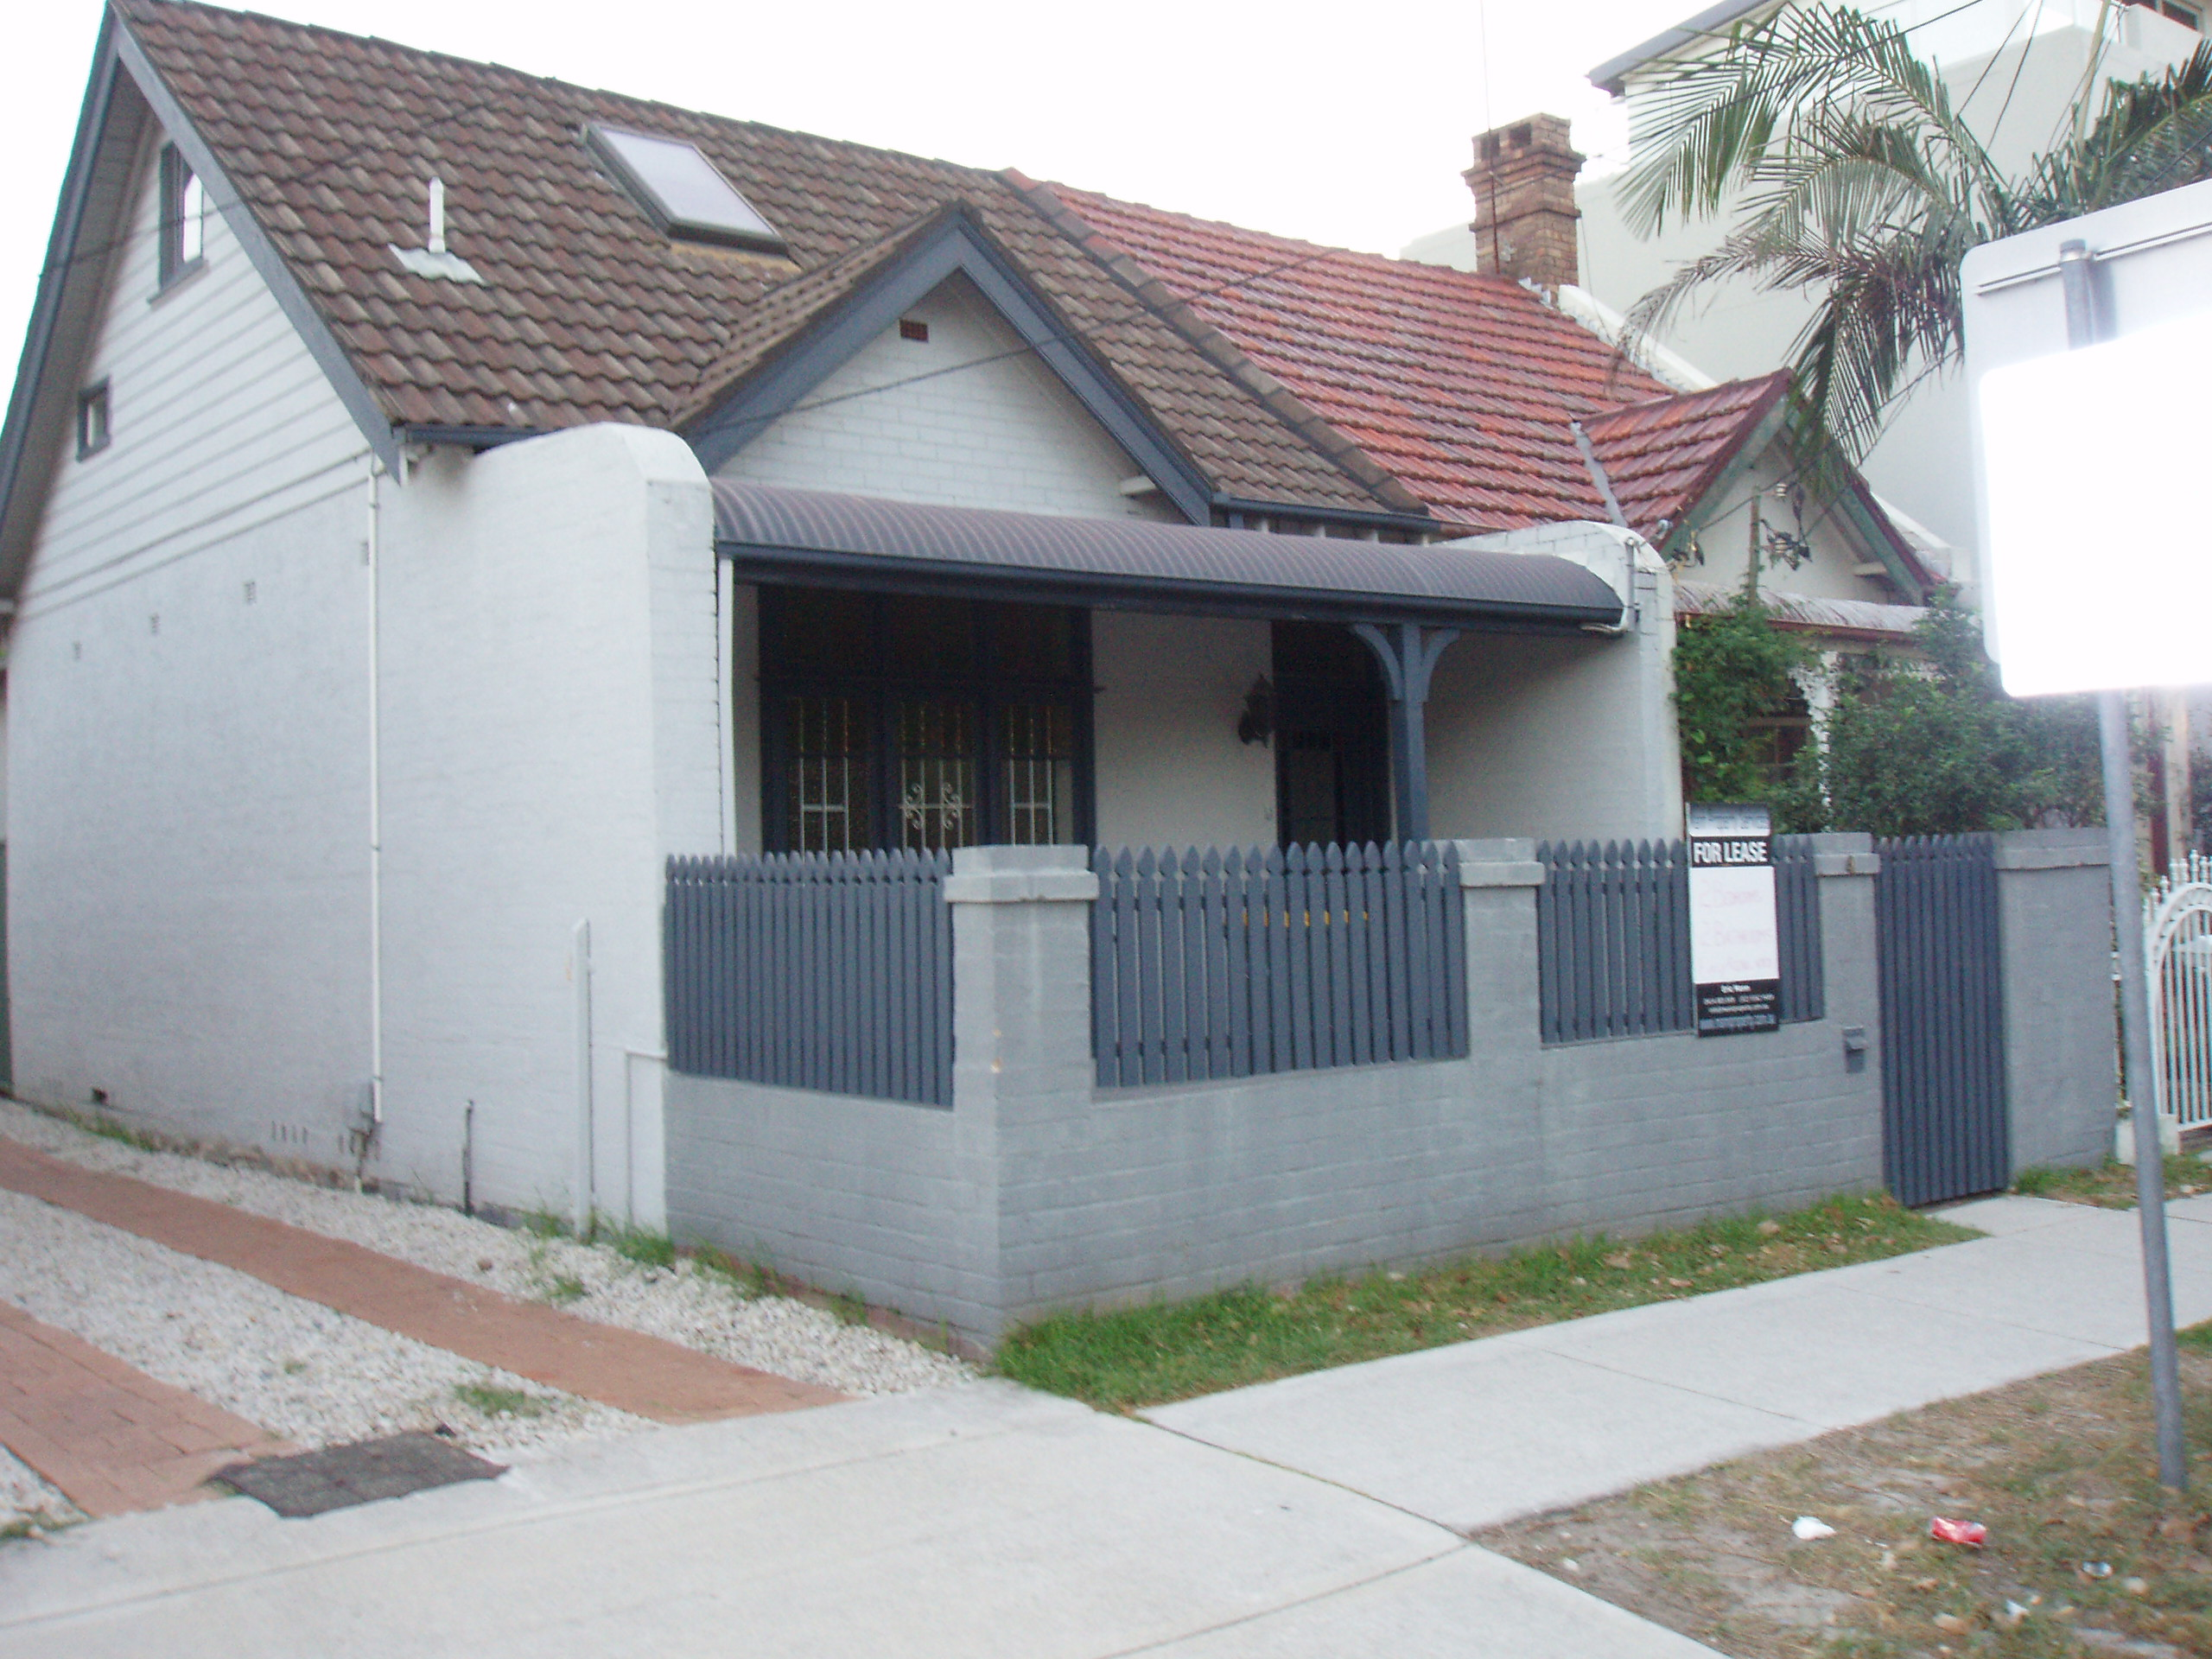 4 ascot street kensington nsw 2033 semi detached for rent $725